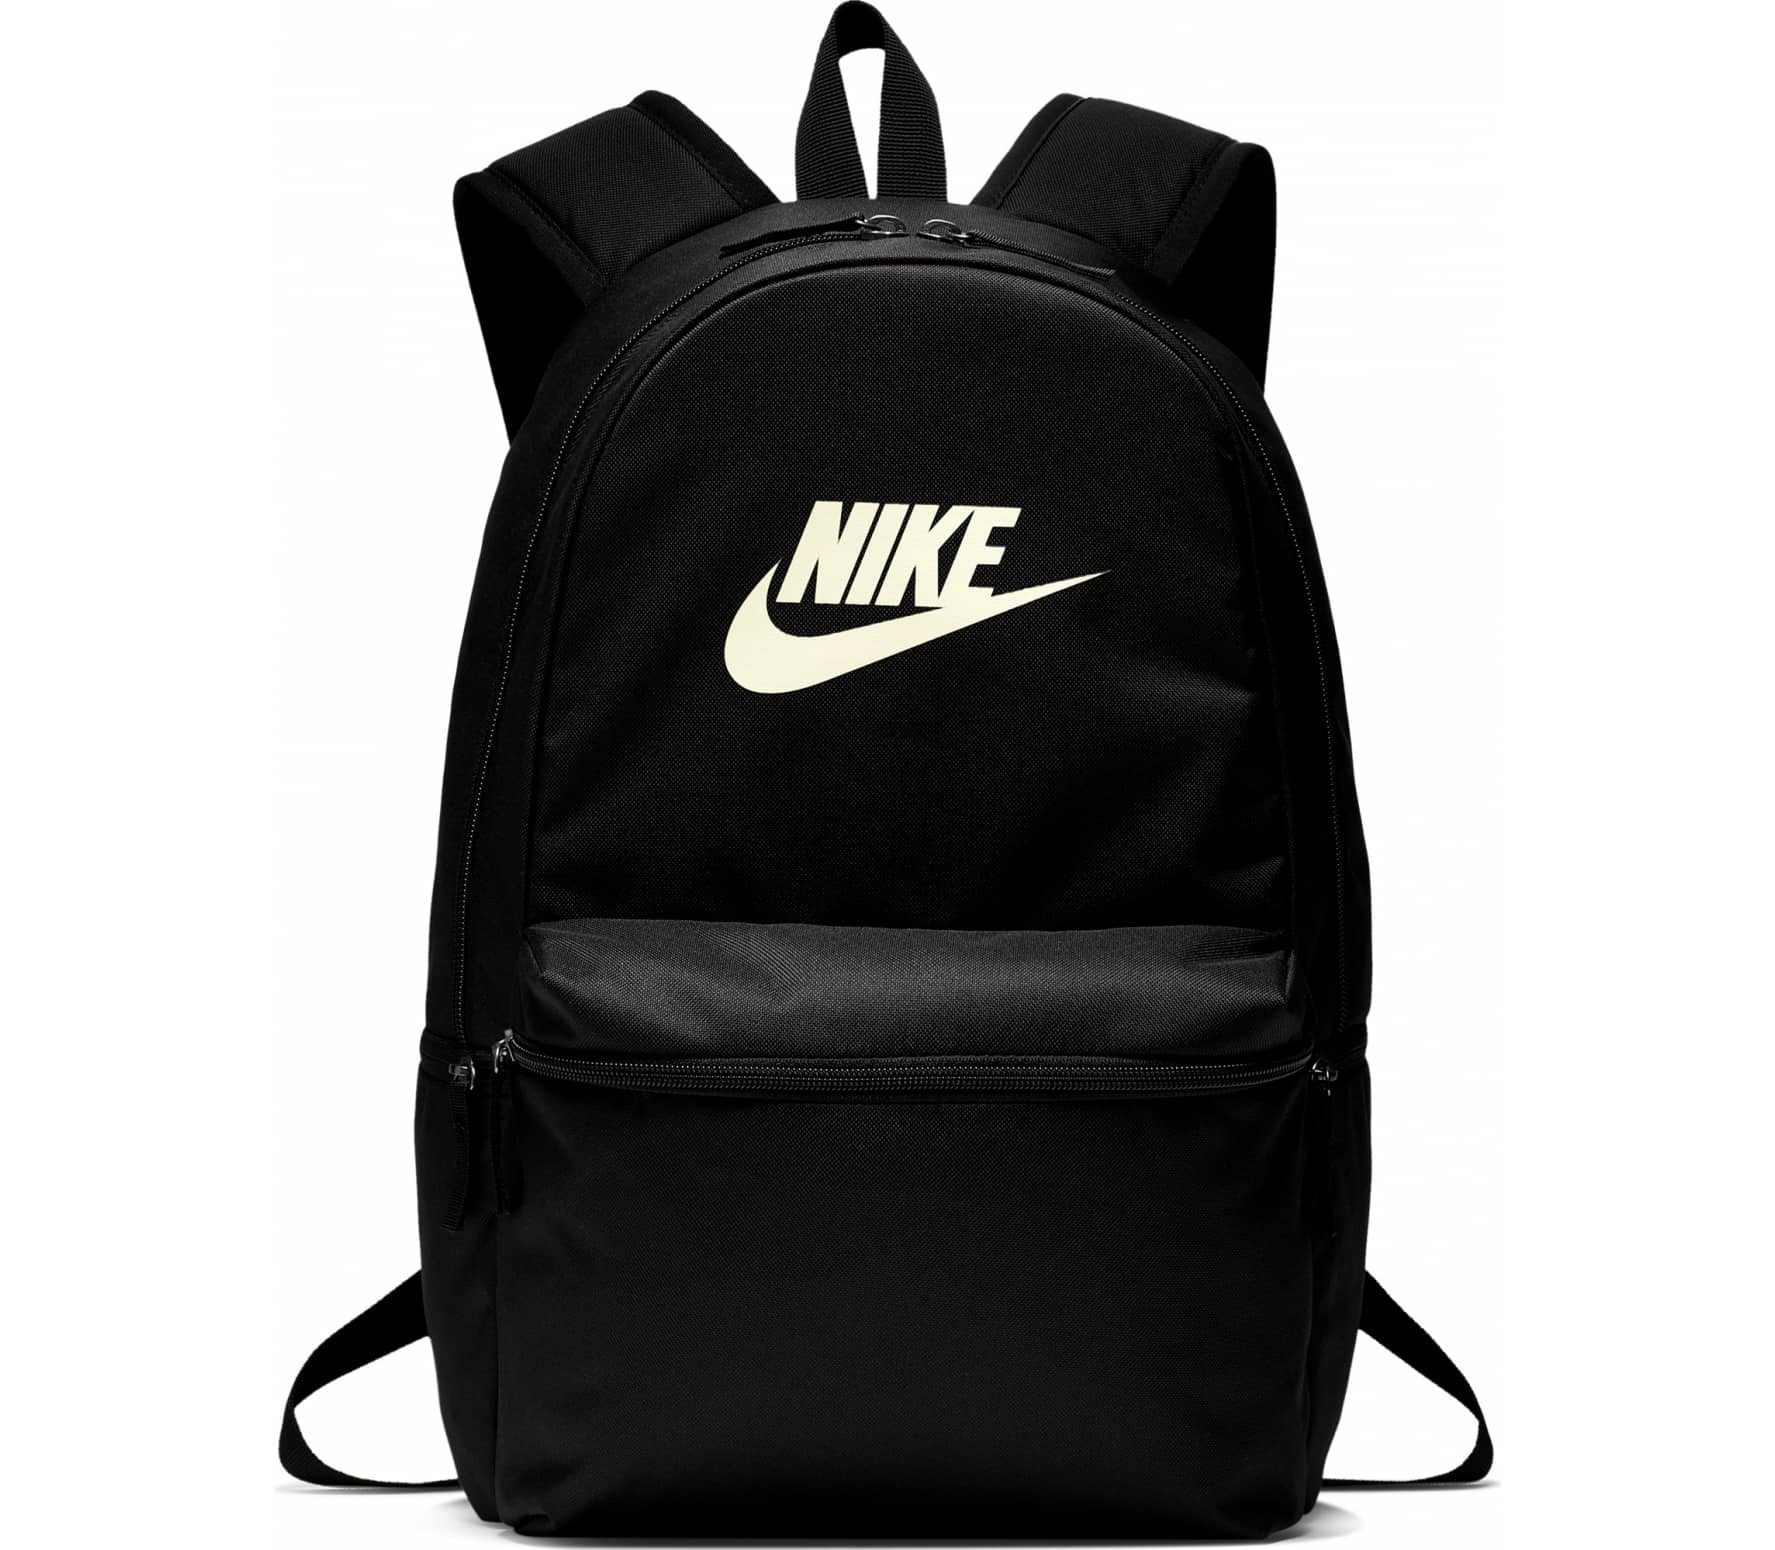 6acc7aa1e9bfc Nike - Heritage backpack (black) - buy it at the Keller Sports ...